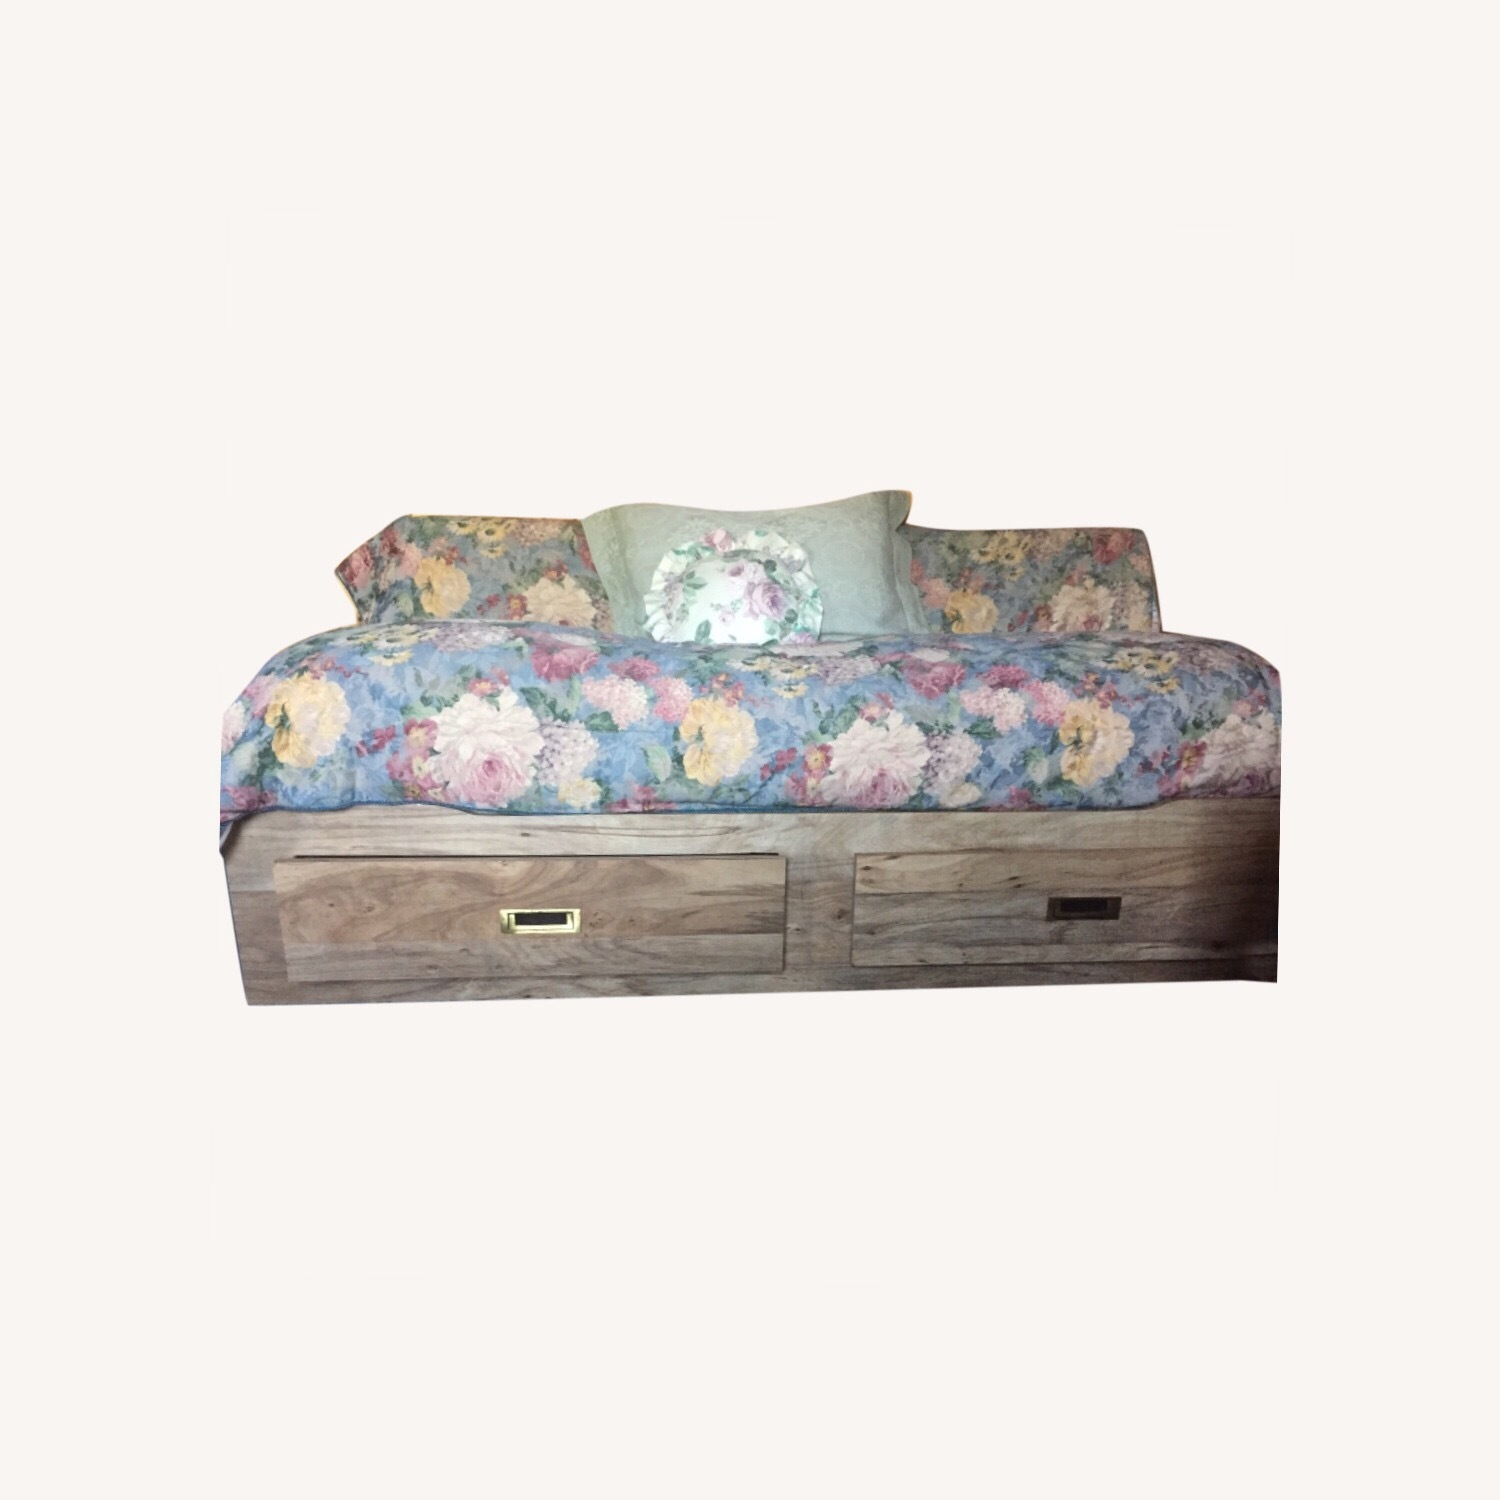 Twin Captain / Platform Bed with 2 Drawers - image-18